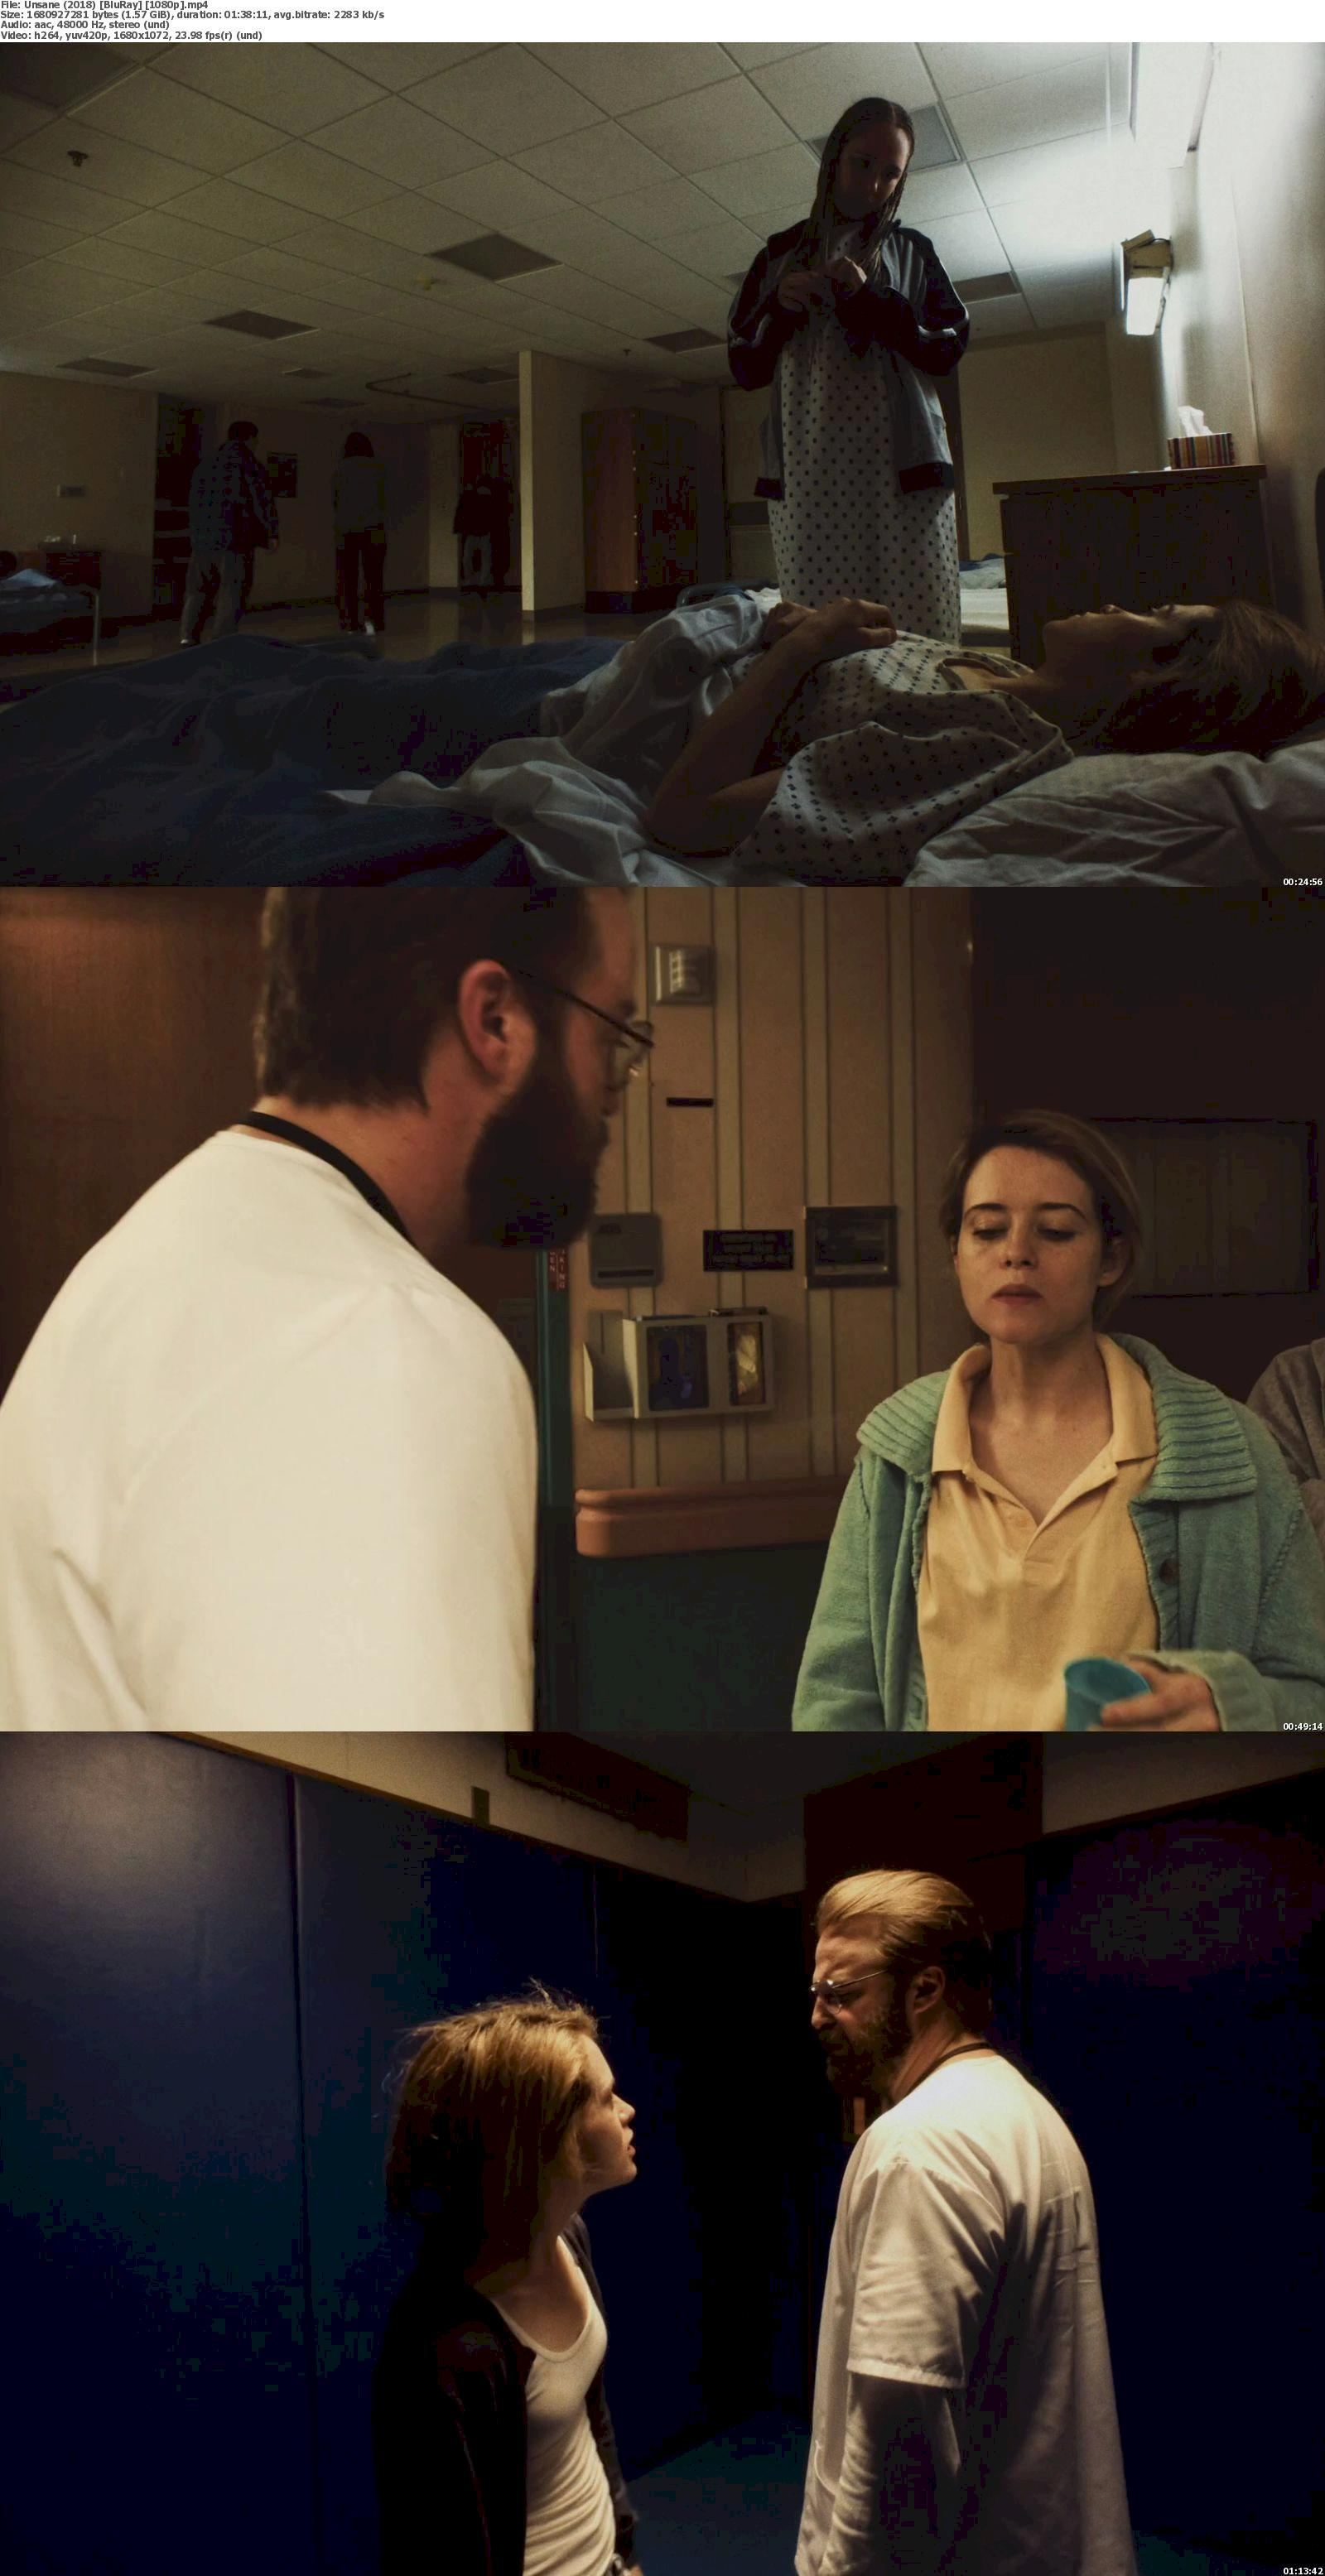 Unsane (2018) [720p & 1080p] Bluray Movie Watch Online & Download 1080p Screenshot